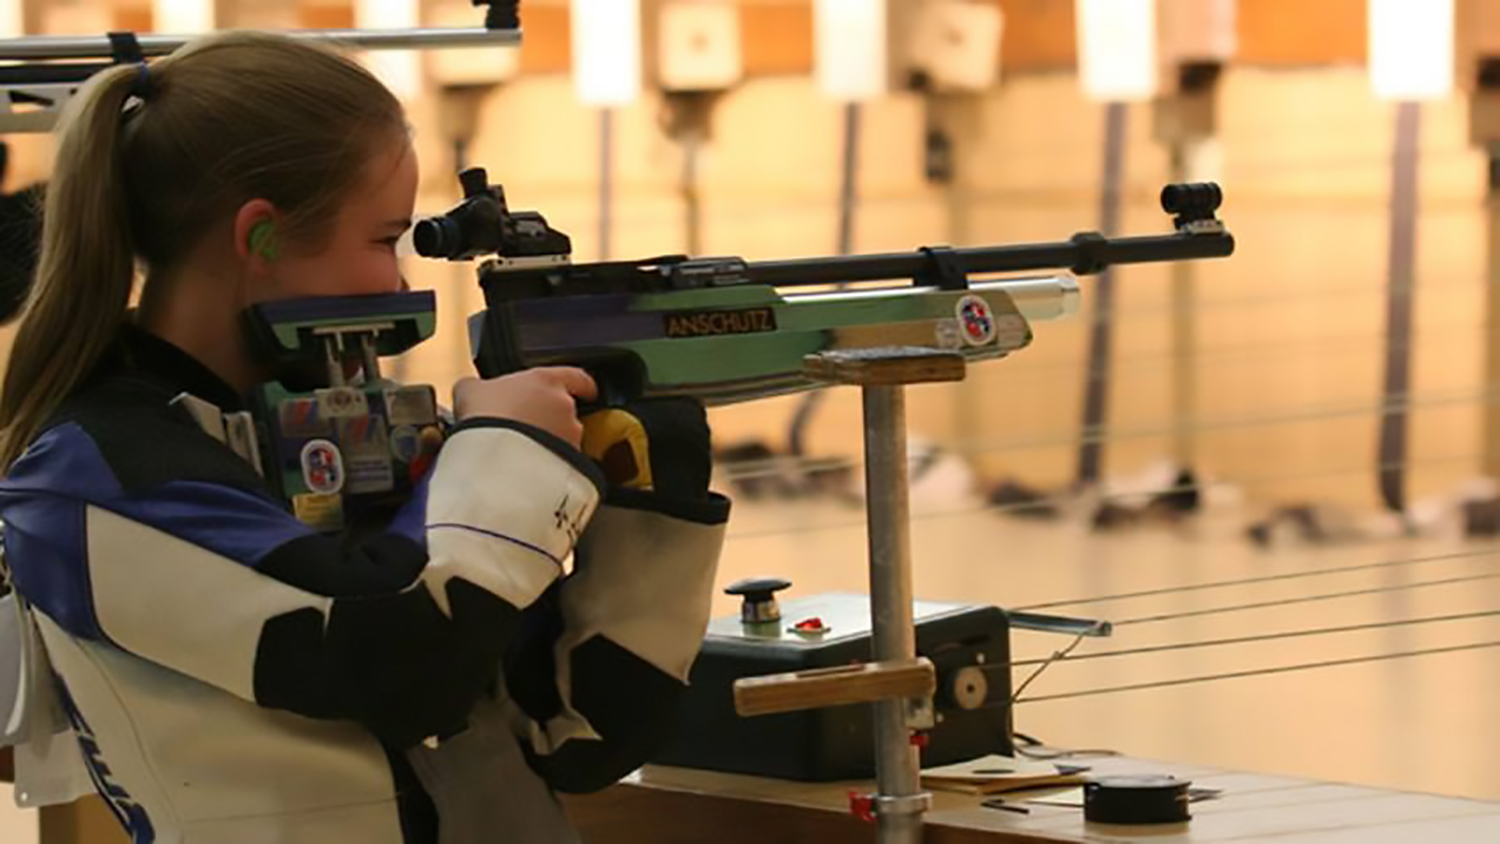 Register Now to Show Your Stuff at the 2018 NRA National Junior Air Rifle Championships